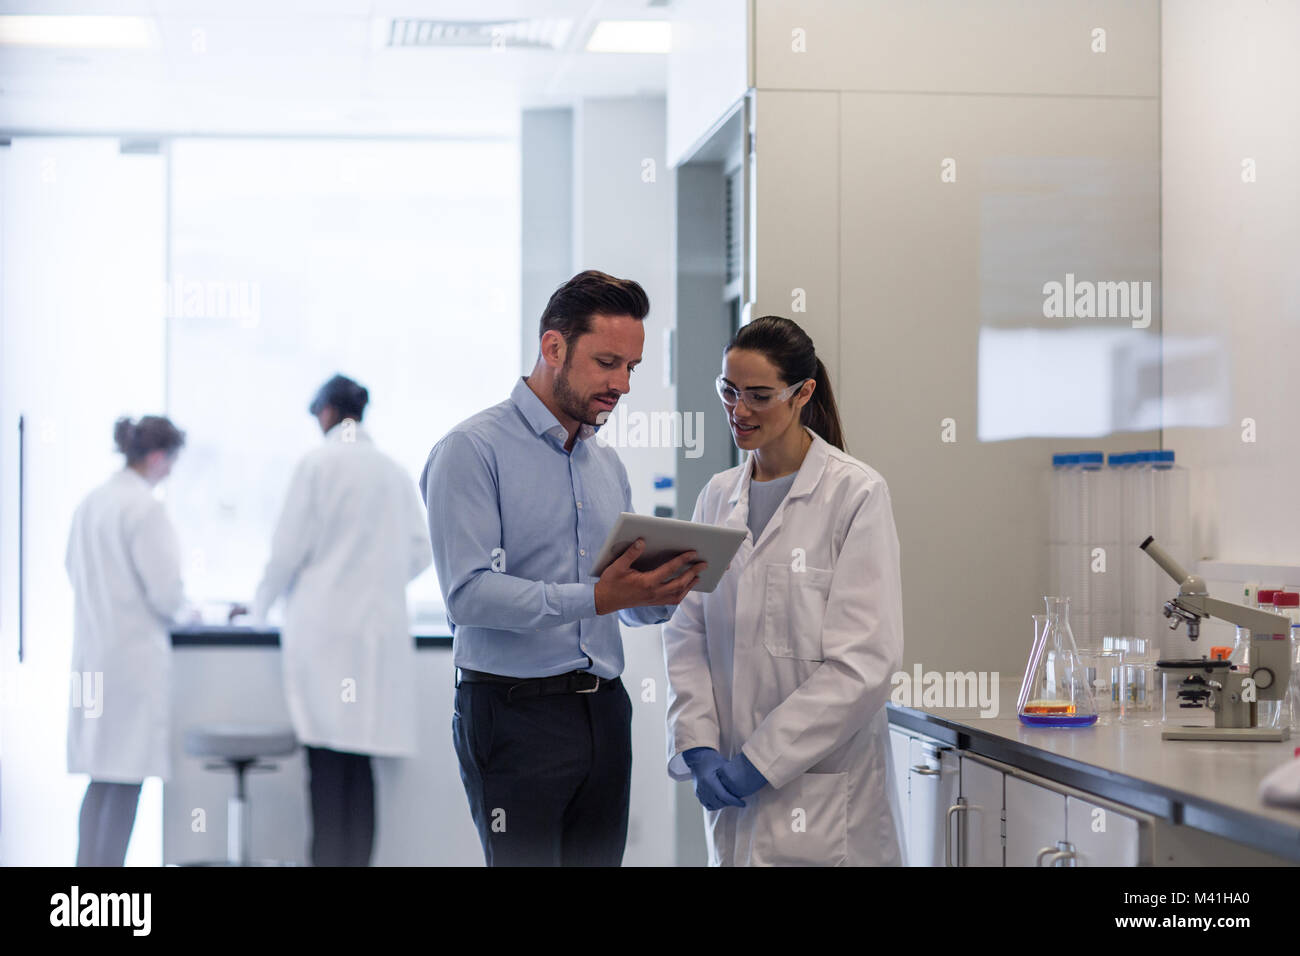 Female Scientist Discussing Data With Pharmaceutical Sales Rep   Stock Image